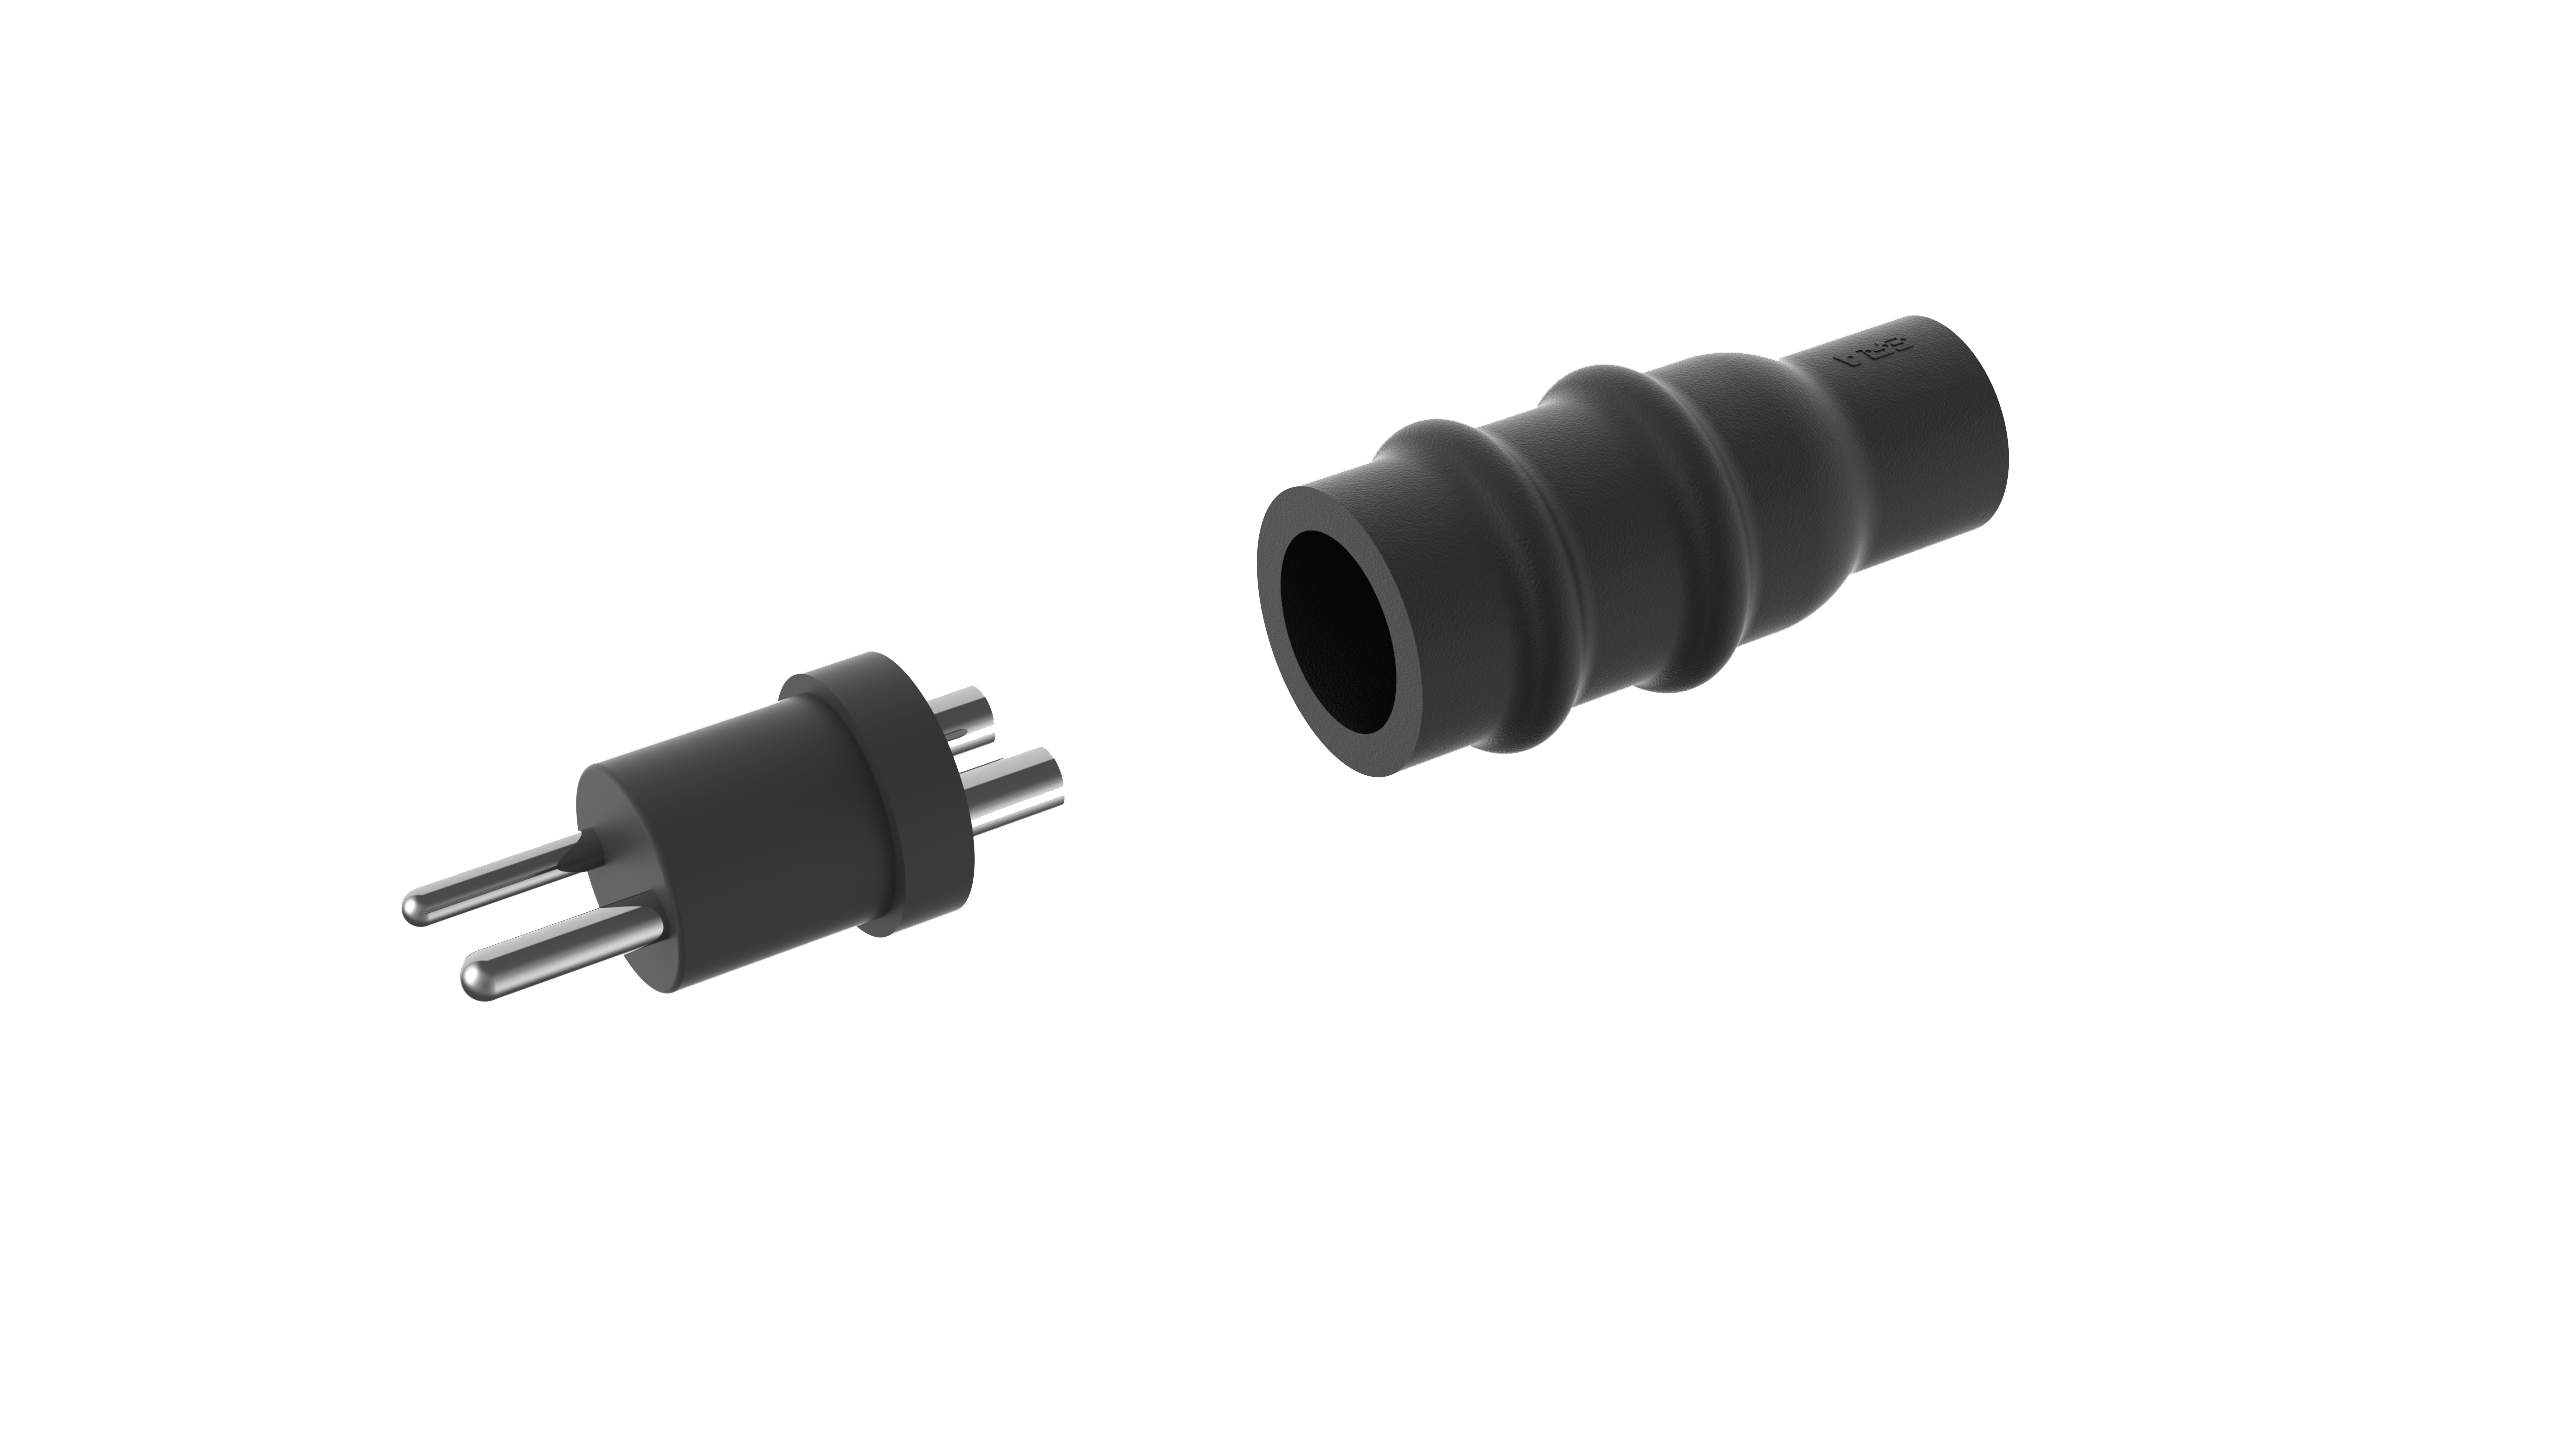 KD501, Secondary Connector Kit for two-core cable, plug, Style 5